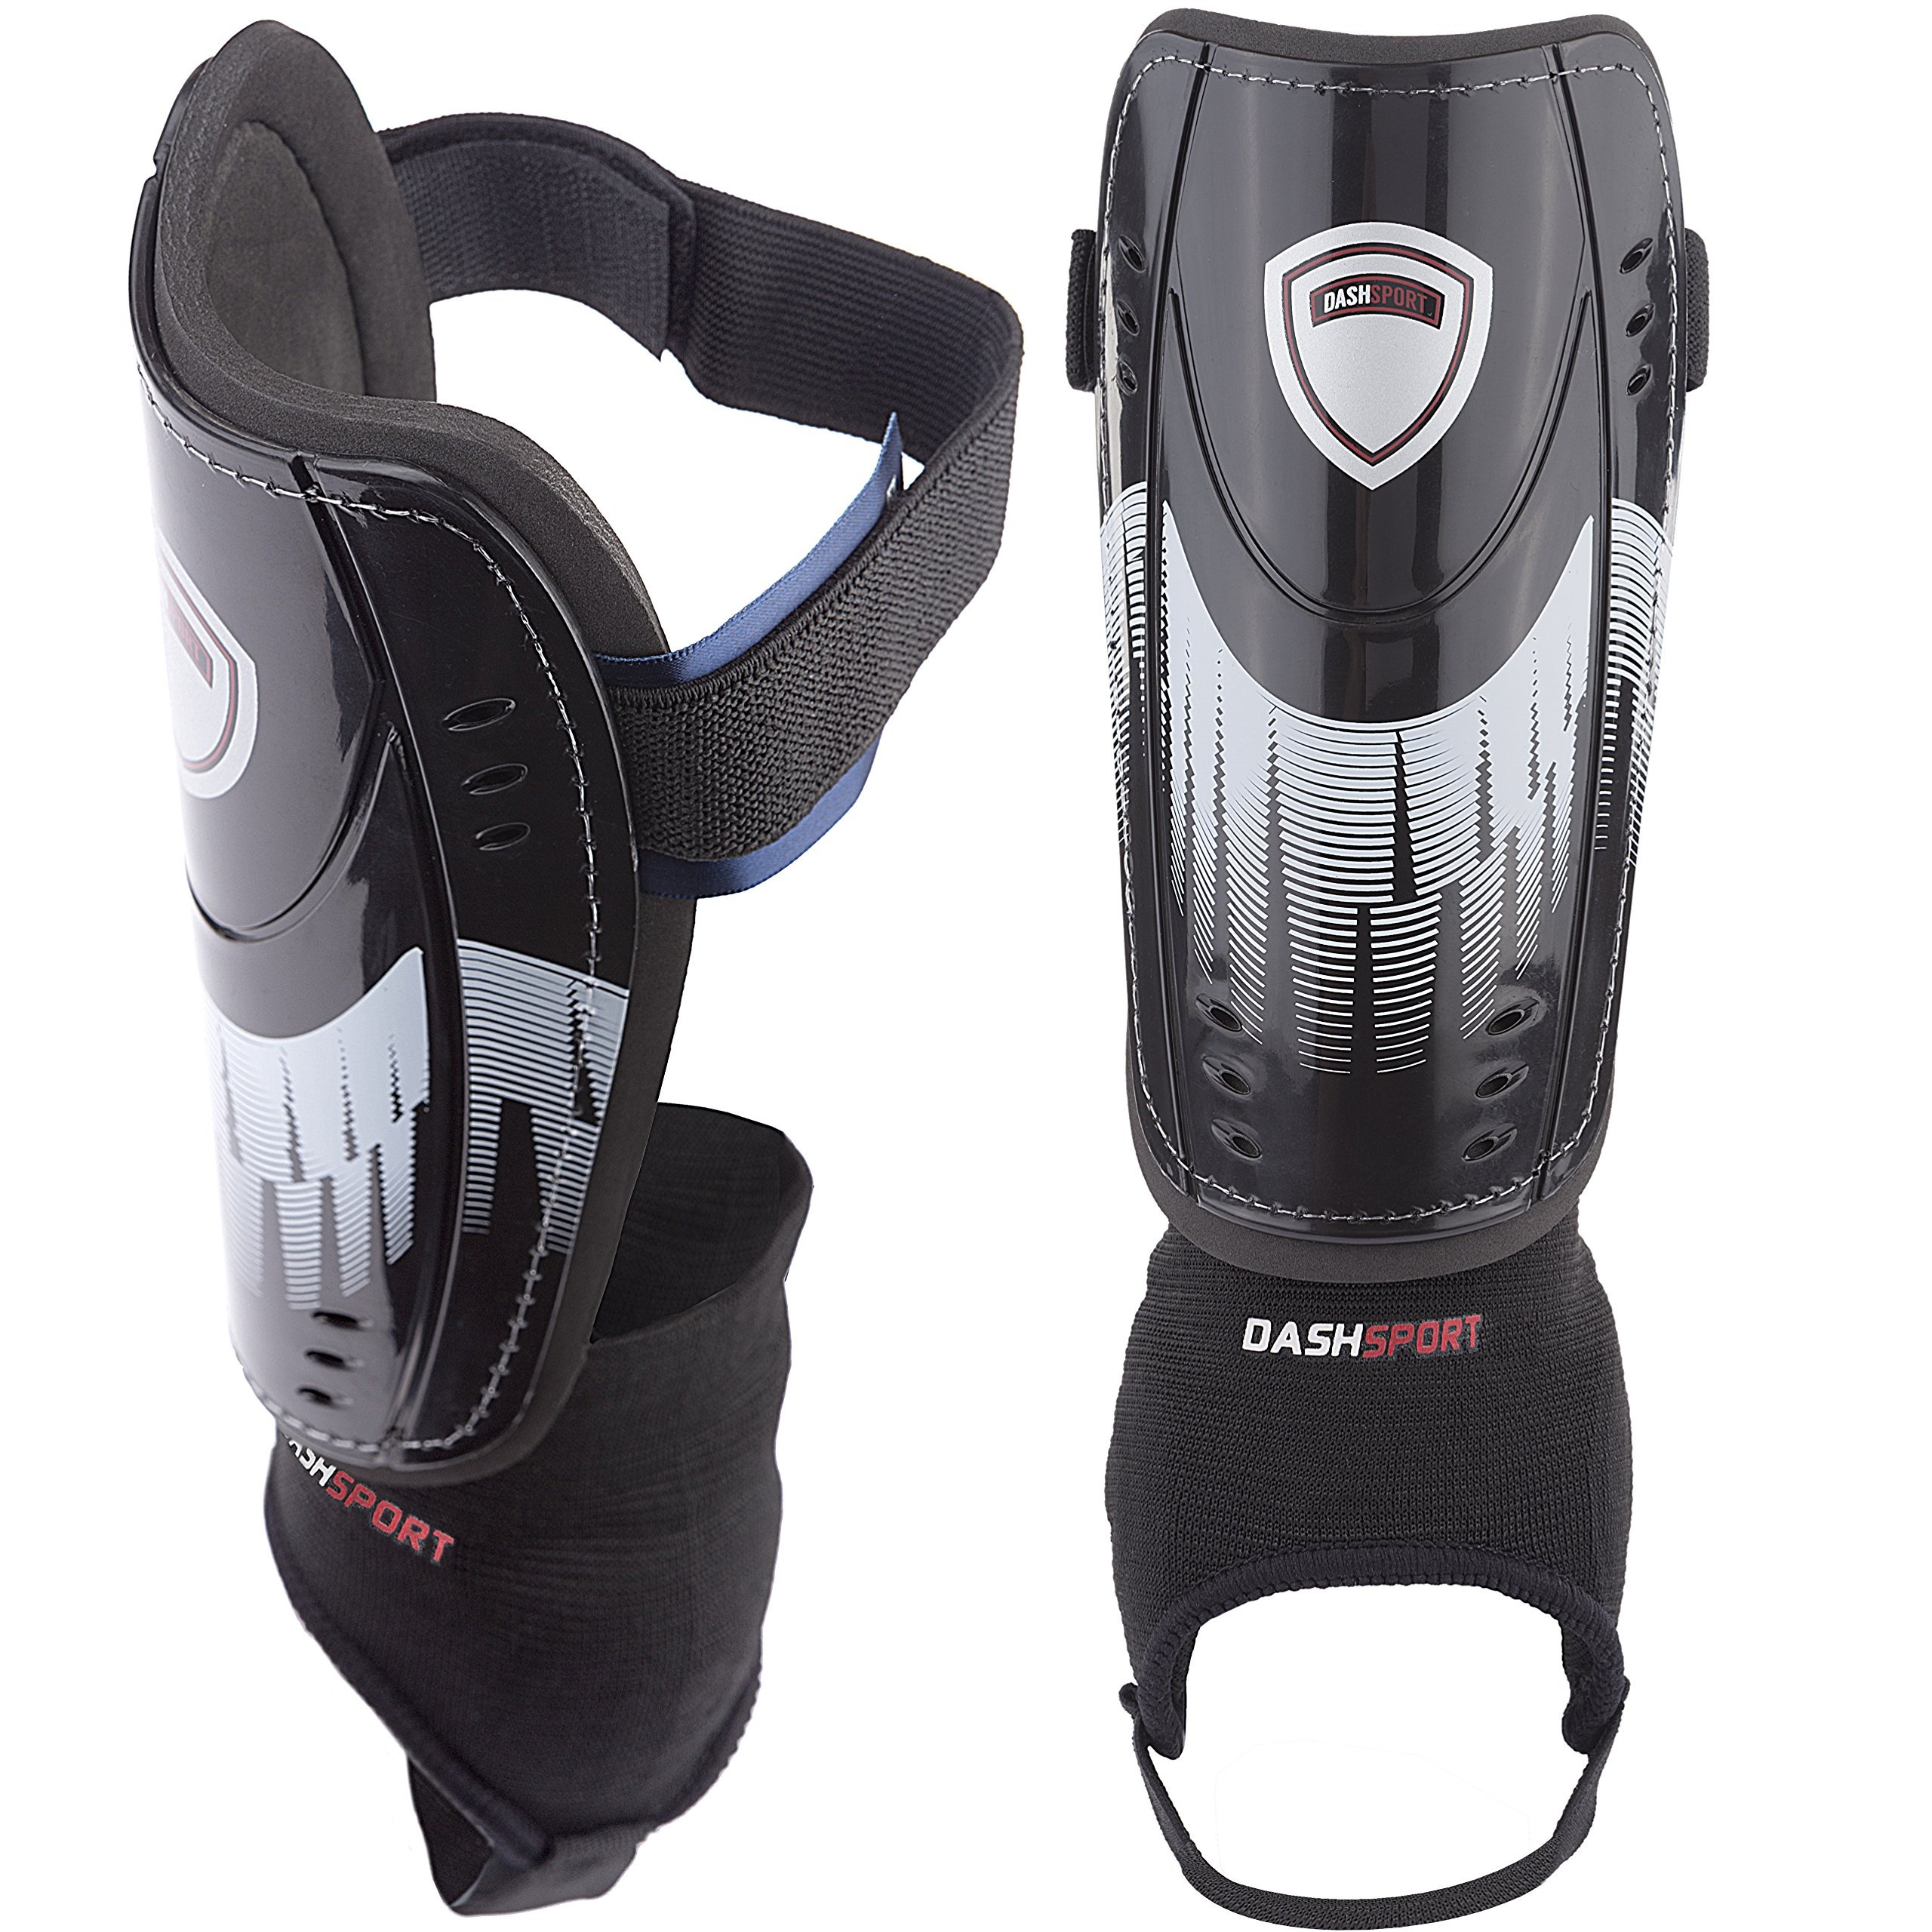 DashSport Soccer Shin Guards -Youth Sizes Best Kids Soccer Equipment with  Ankle Sleeves - Great for Boys and Girls 25148303f4ff